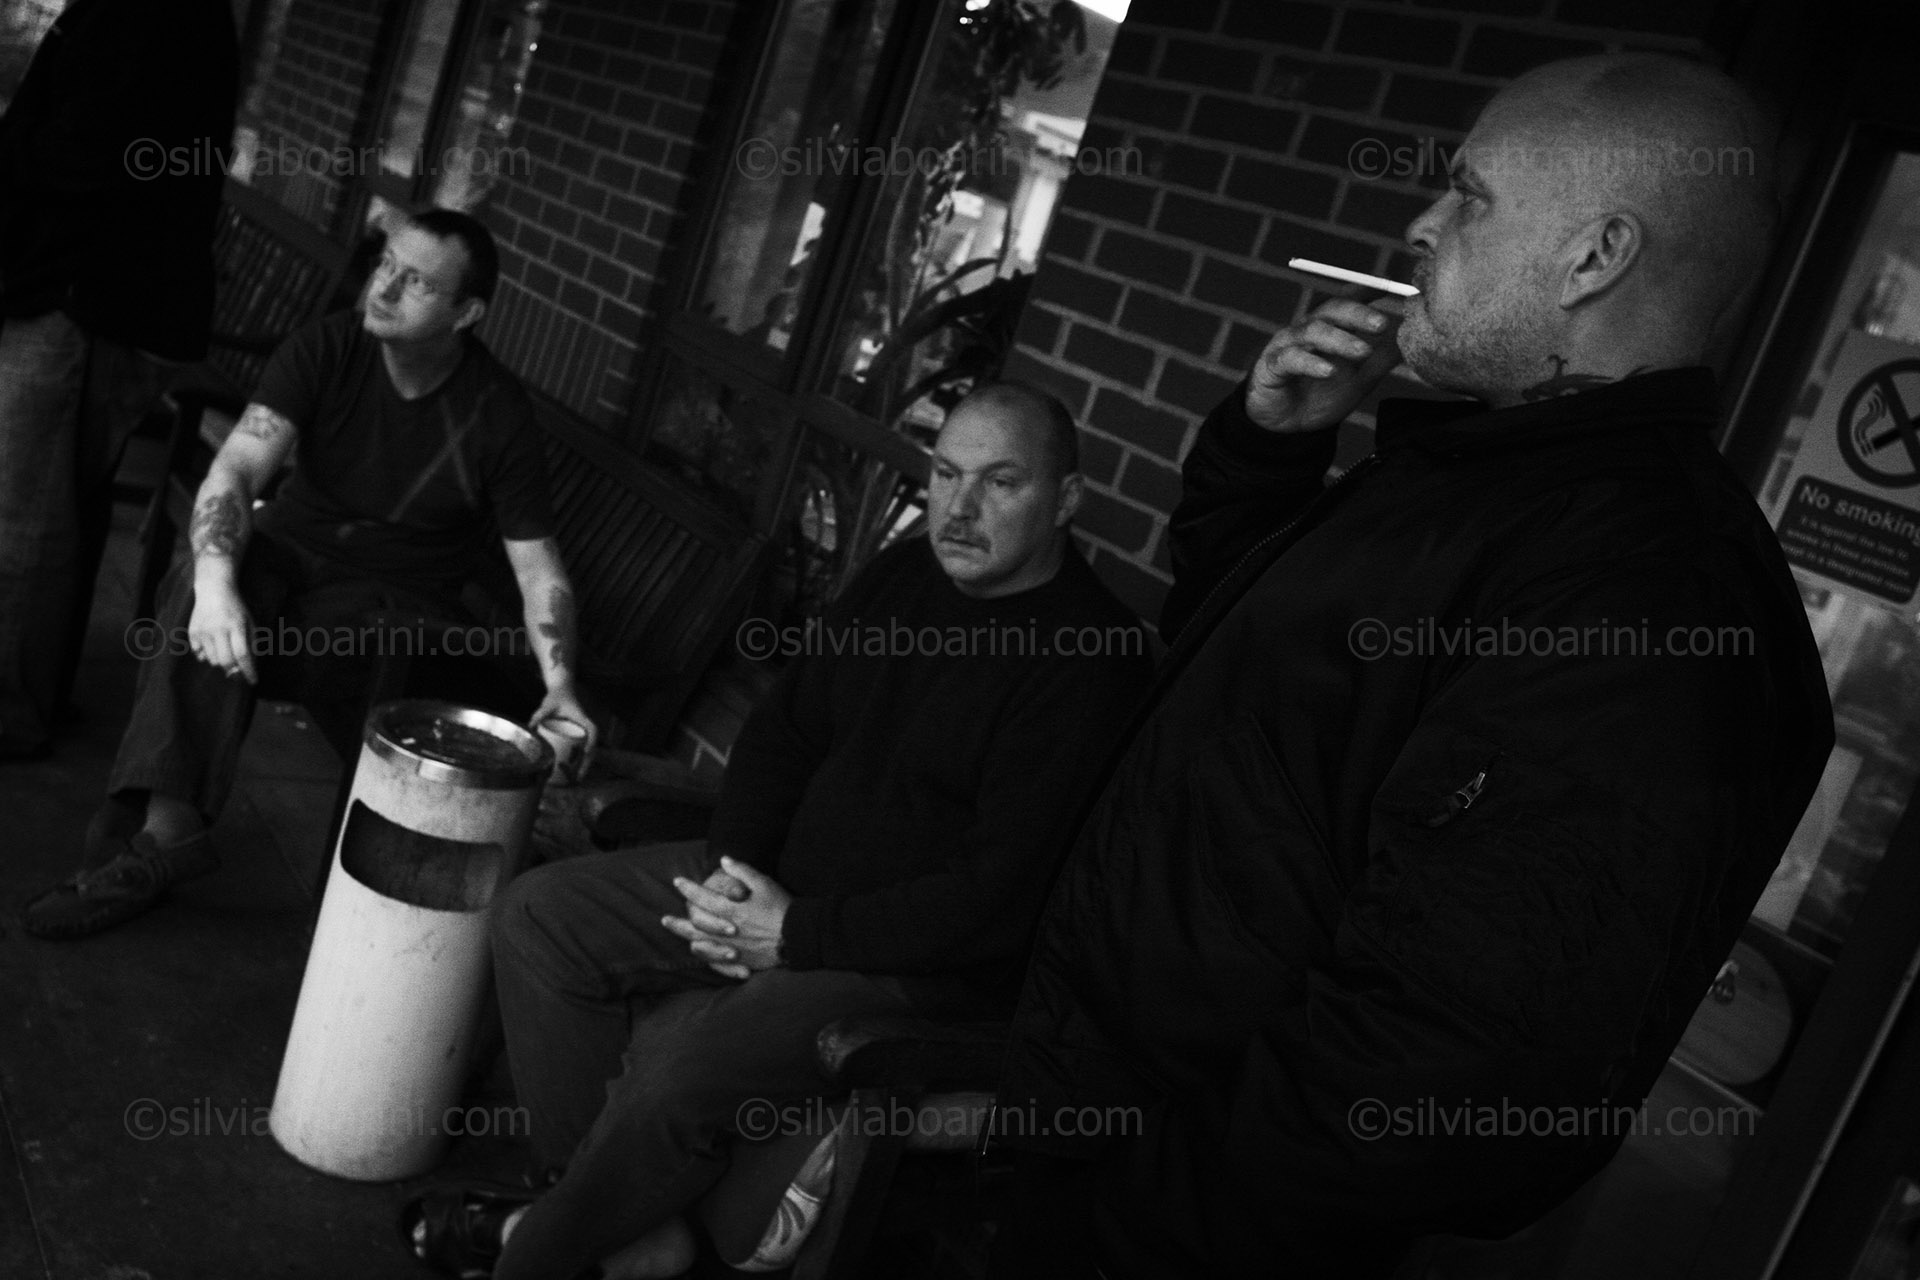 Men gather outside for a cigarette and a chat, Leatherhead, UK